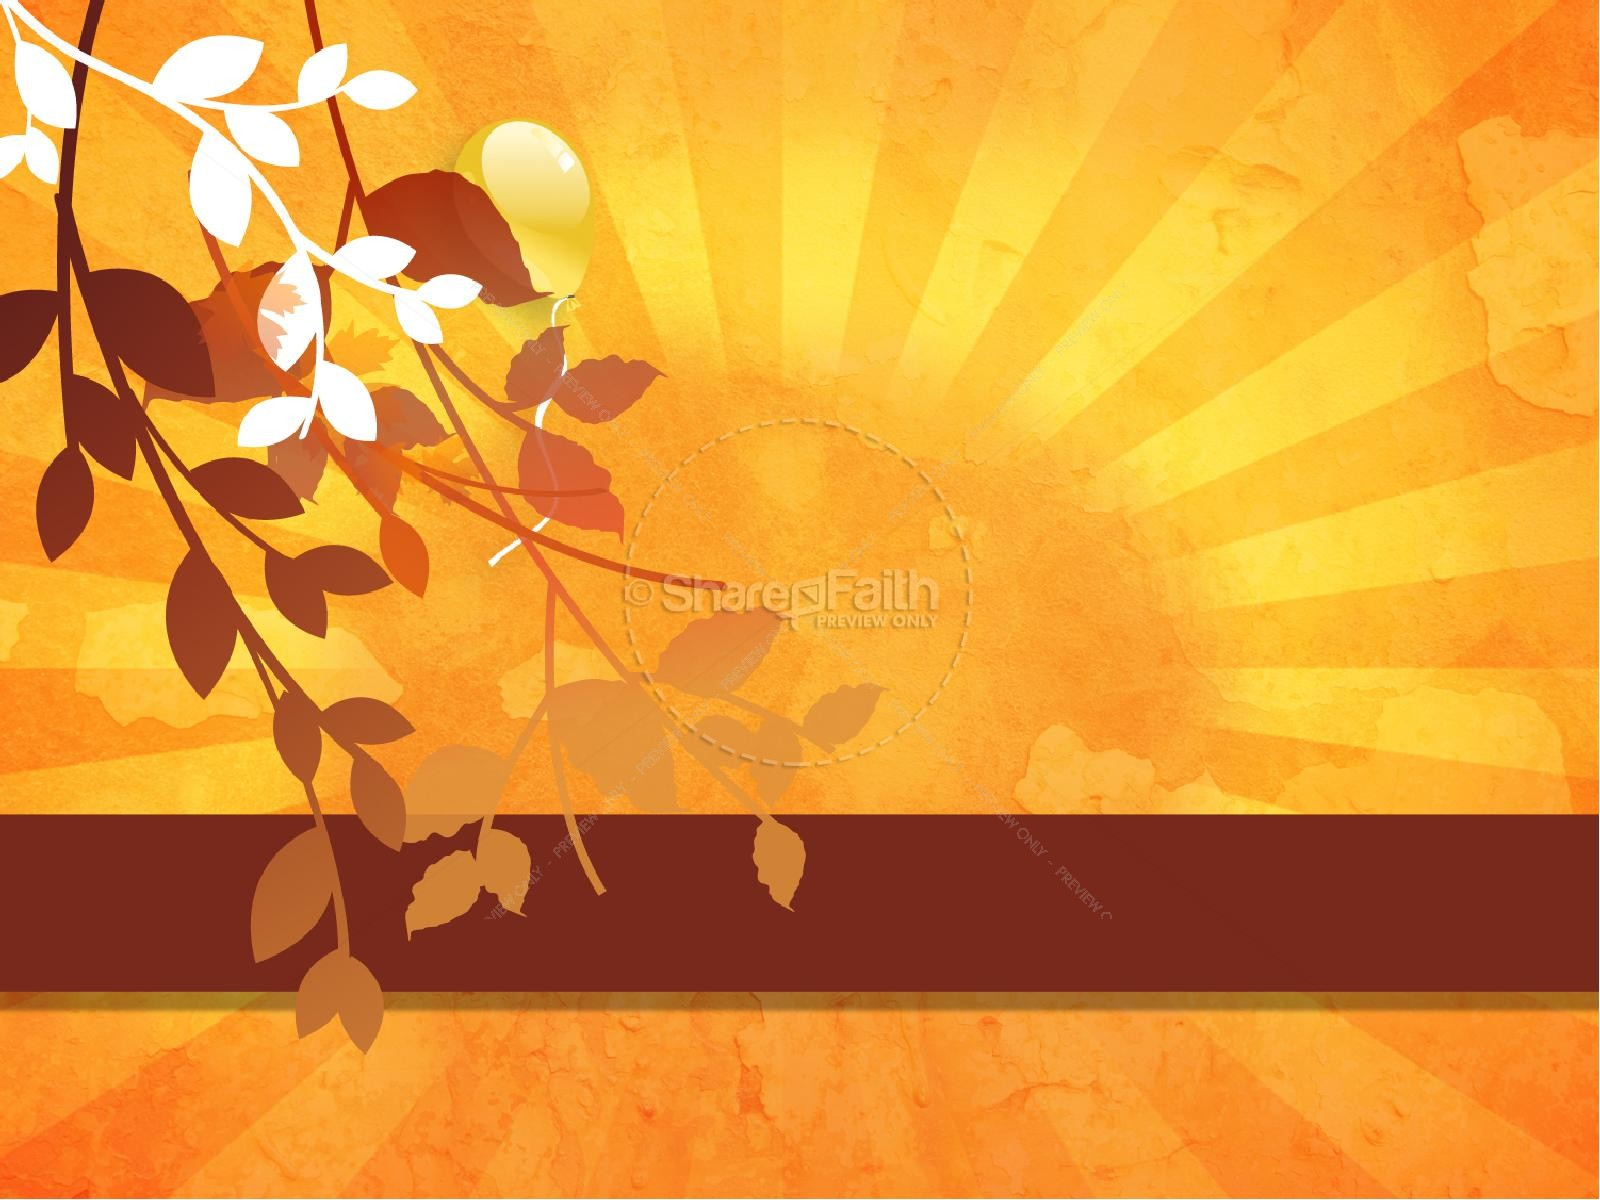 Fall Celebration Church PowerPoint Thanksgiving